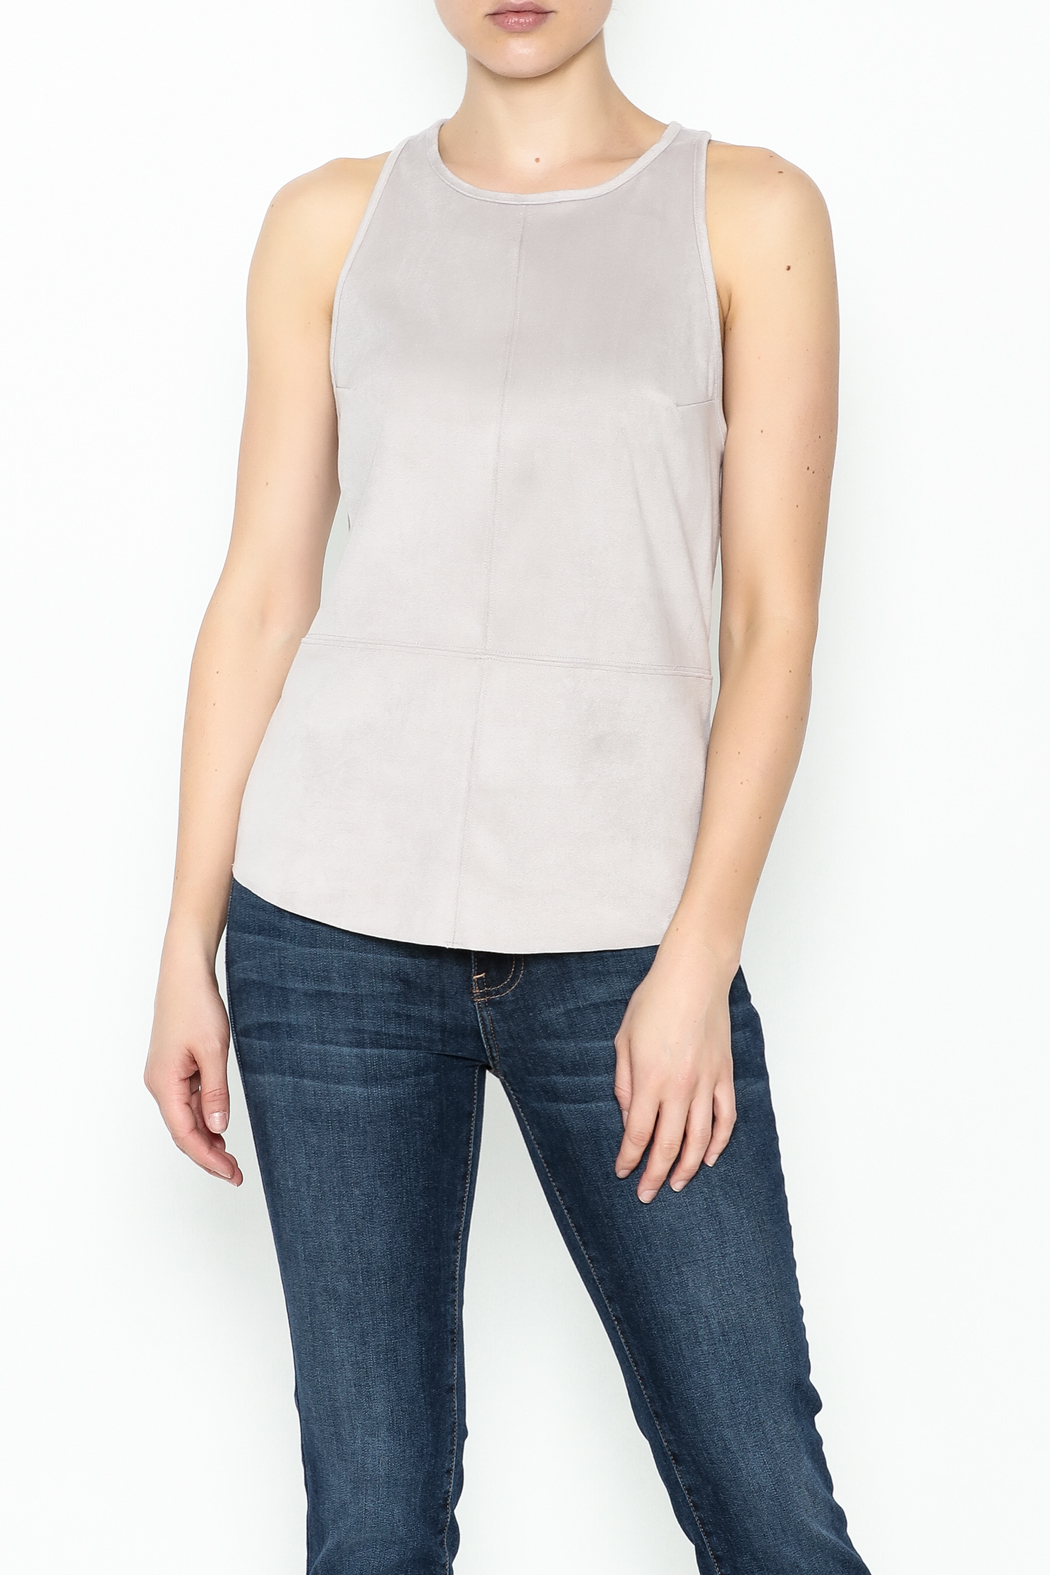 Gentle Fawn Faux Suede Top - Main Image